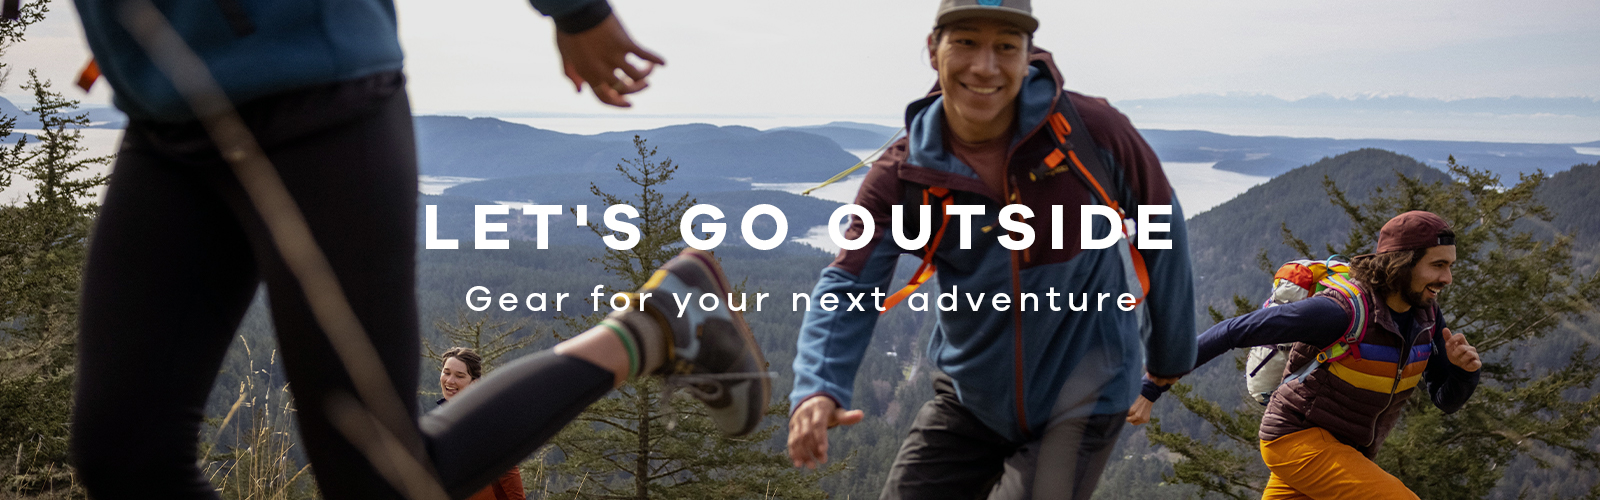 Let's go outside | Gear for your next adventure